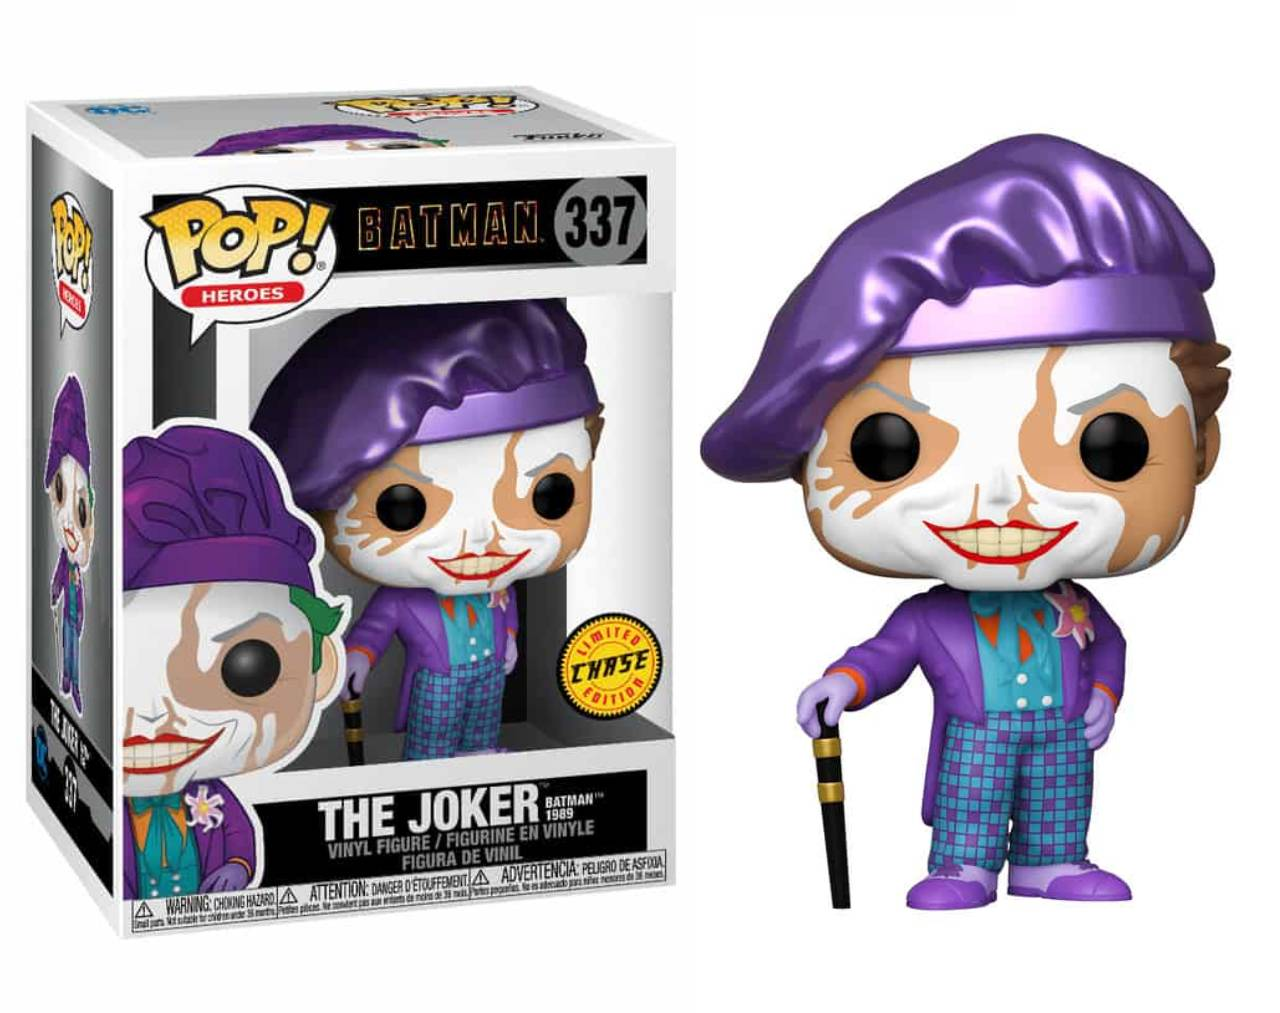 The Joker (Chase Edition) Pop! Vinyl